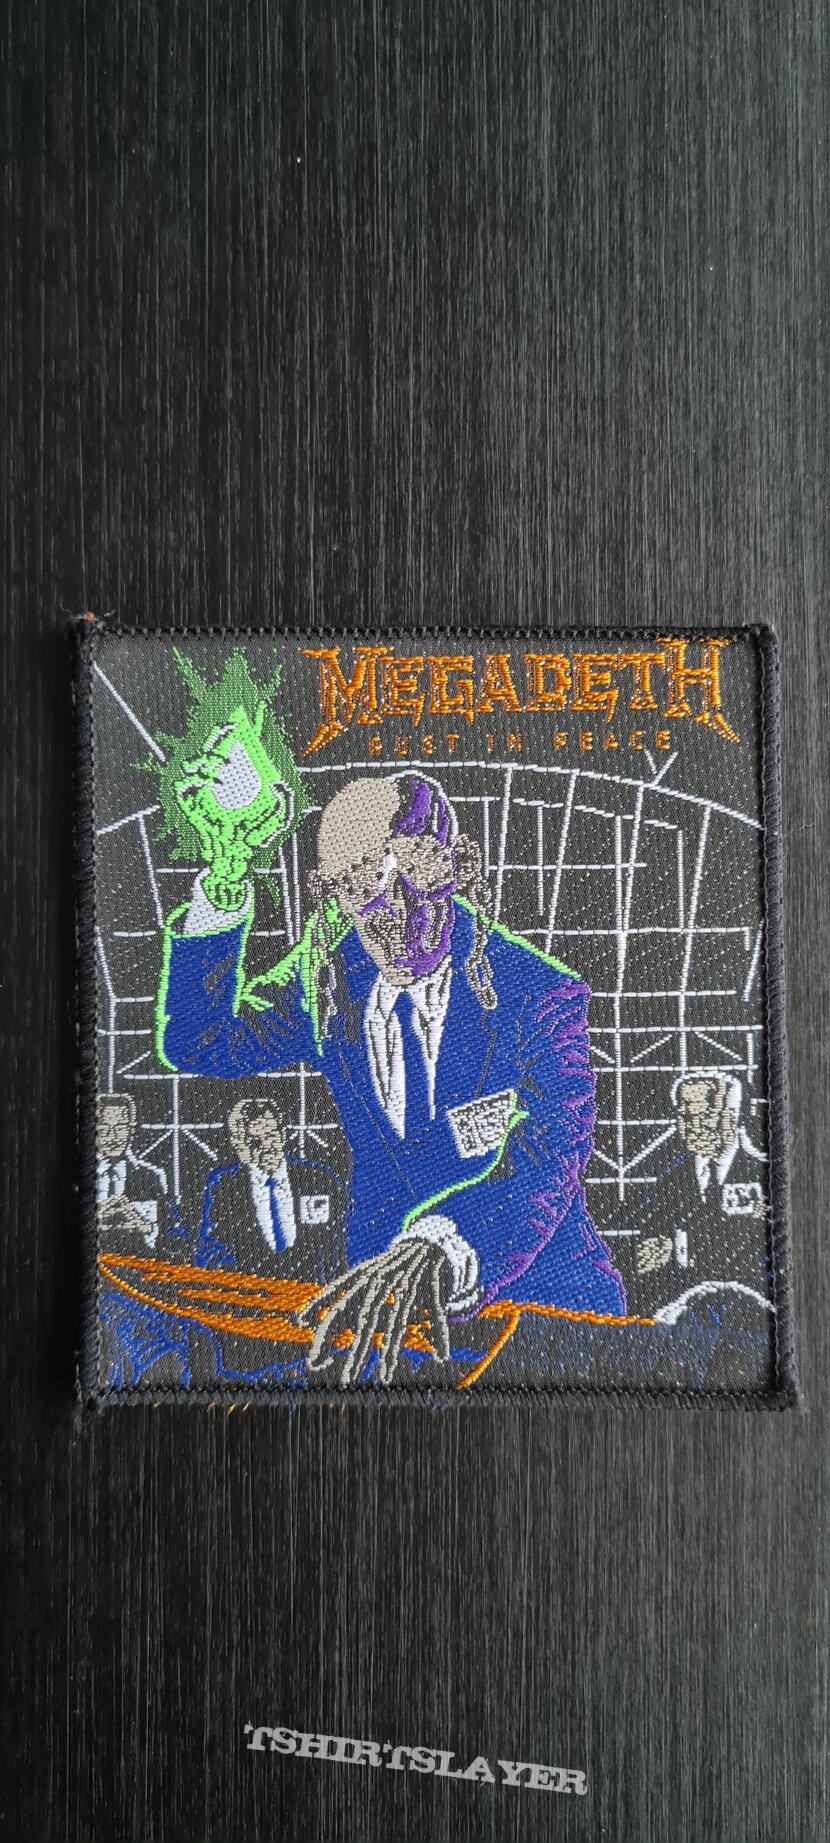 Megadeth- Rust in Peace, official patch